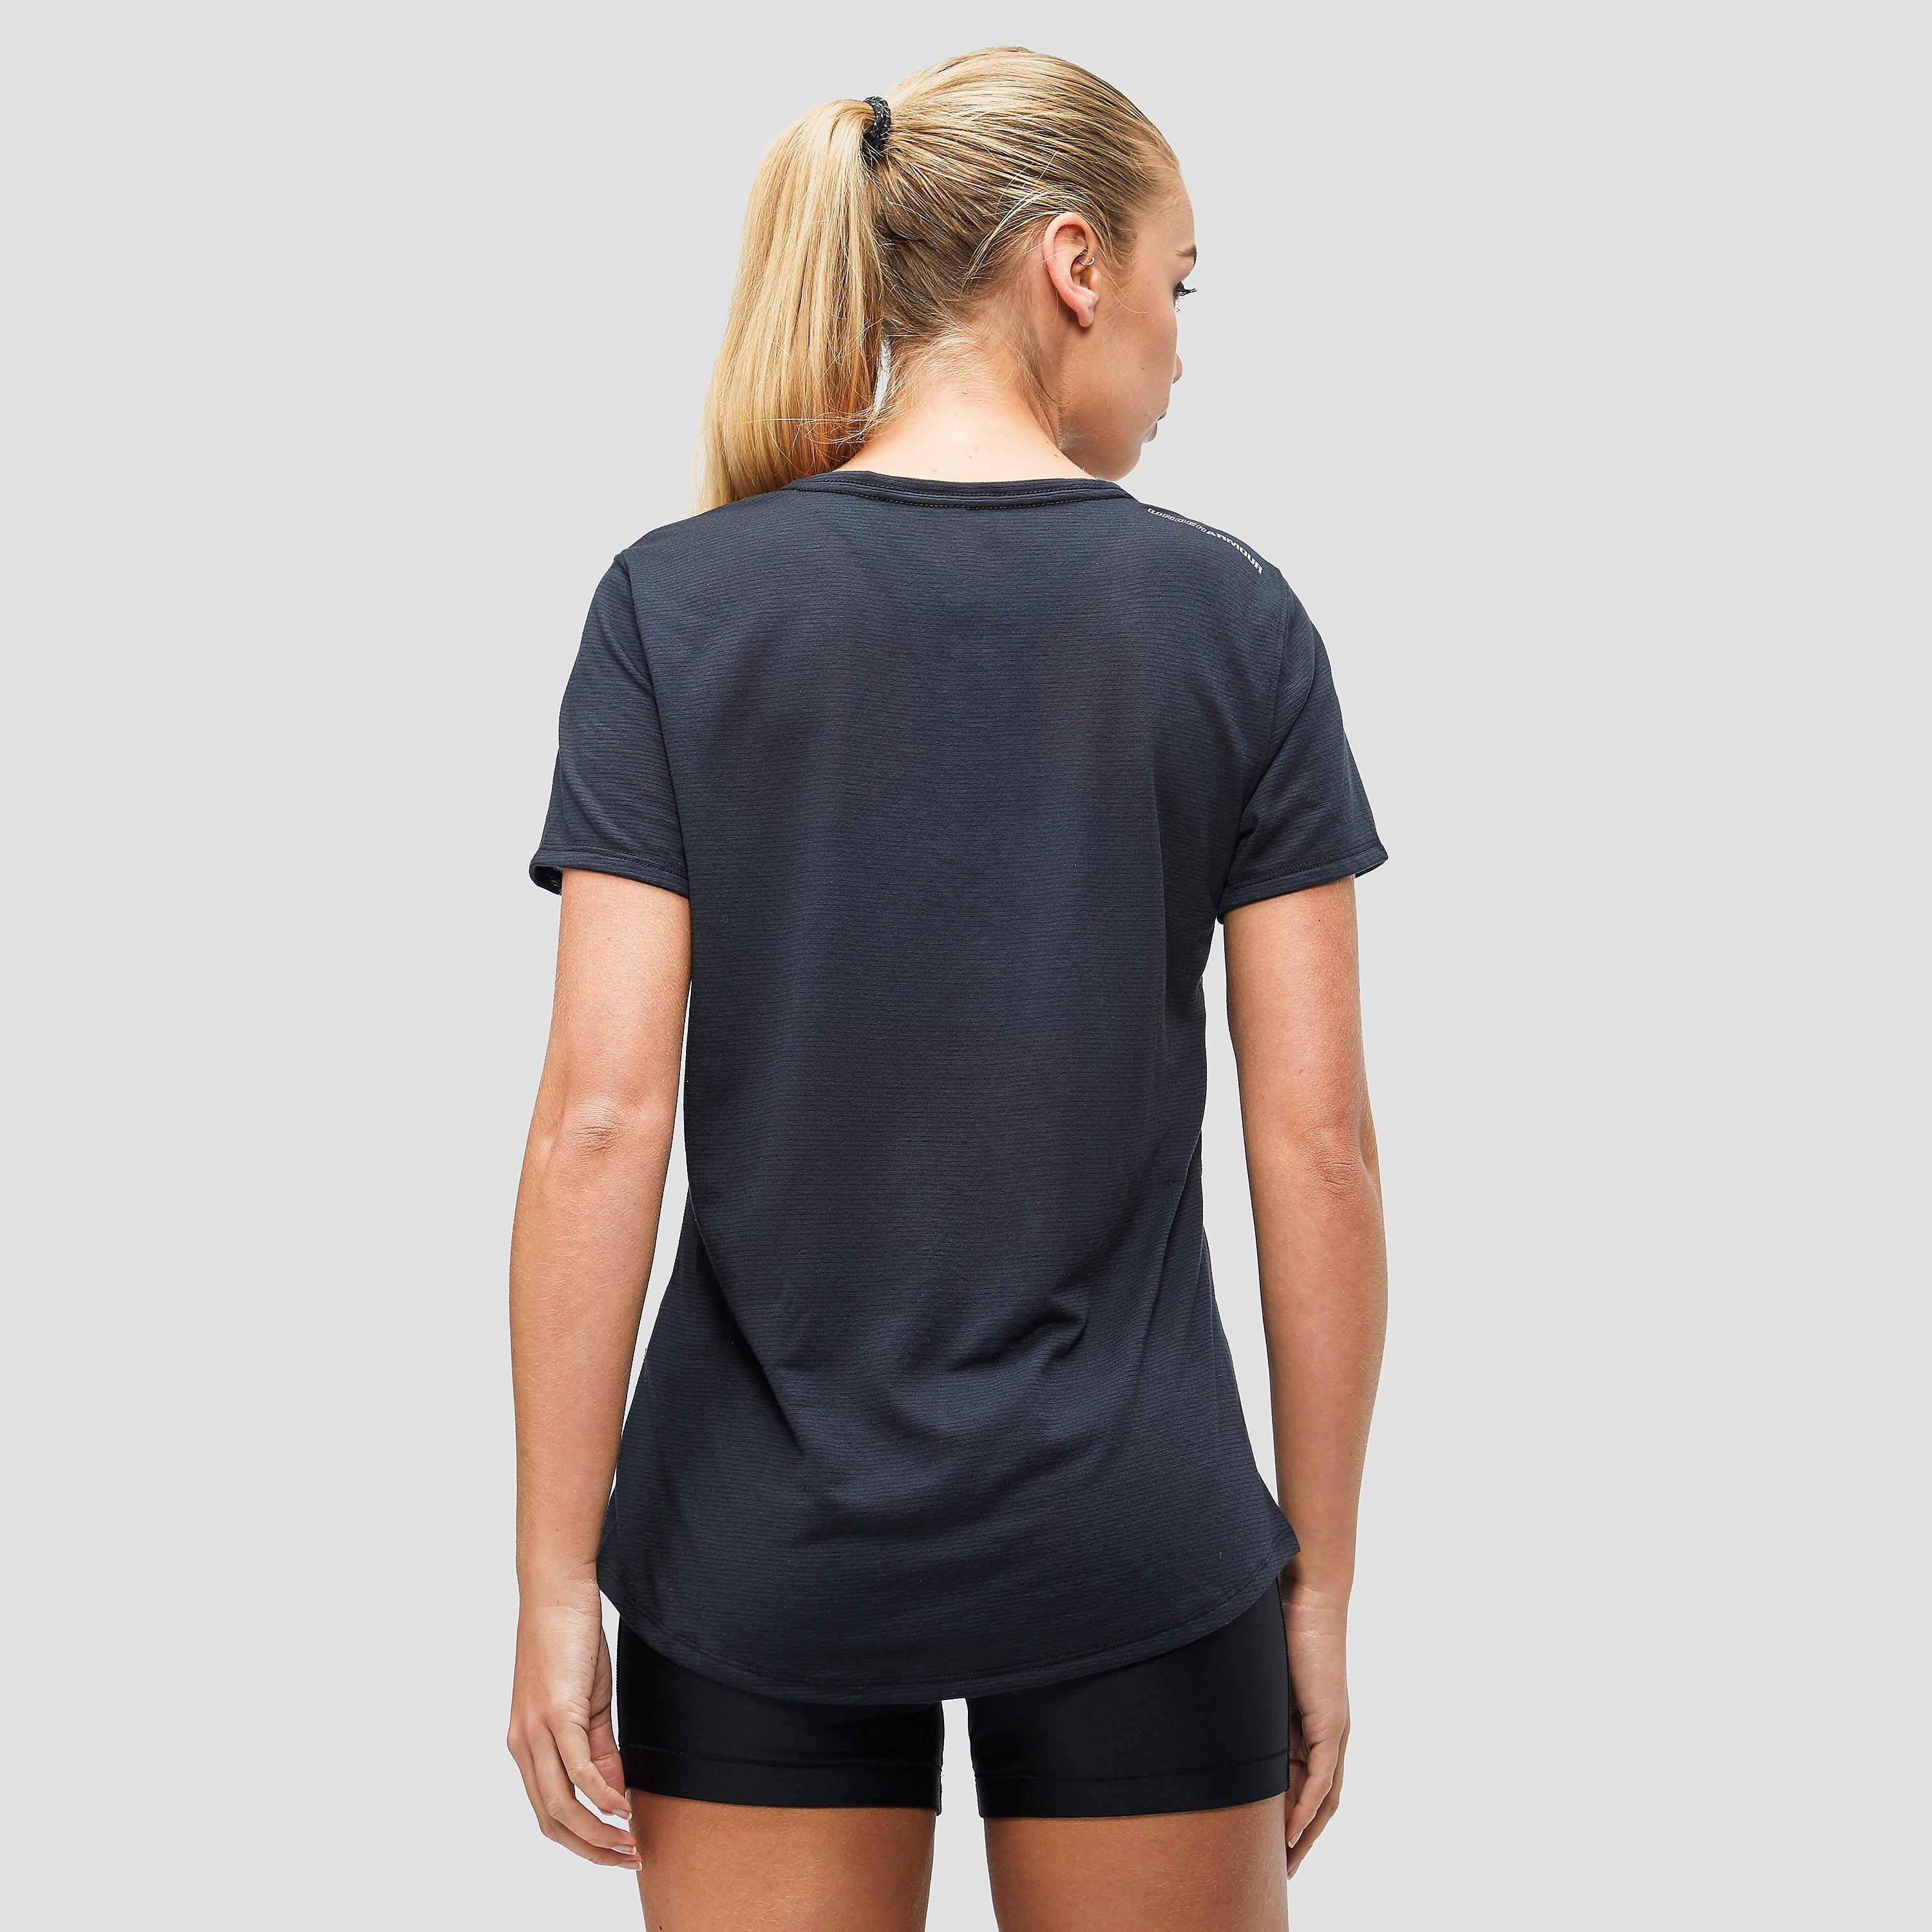 Under Armour Women's Streaker Short Sleeve T-Shirt